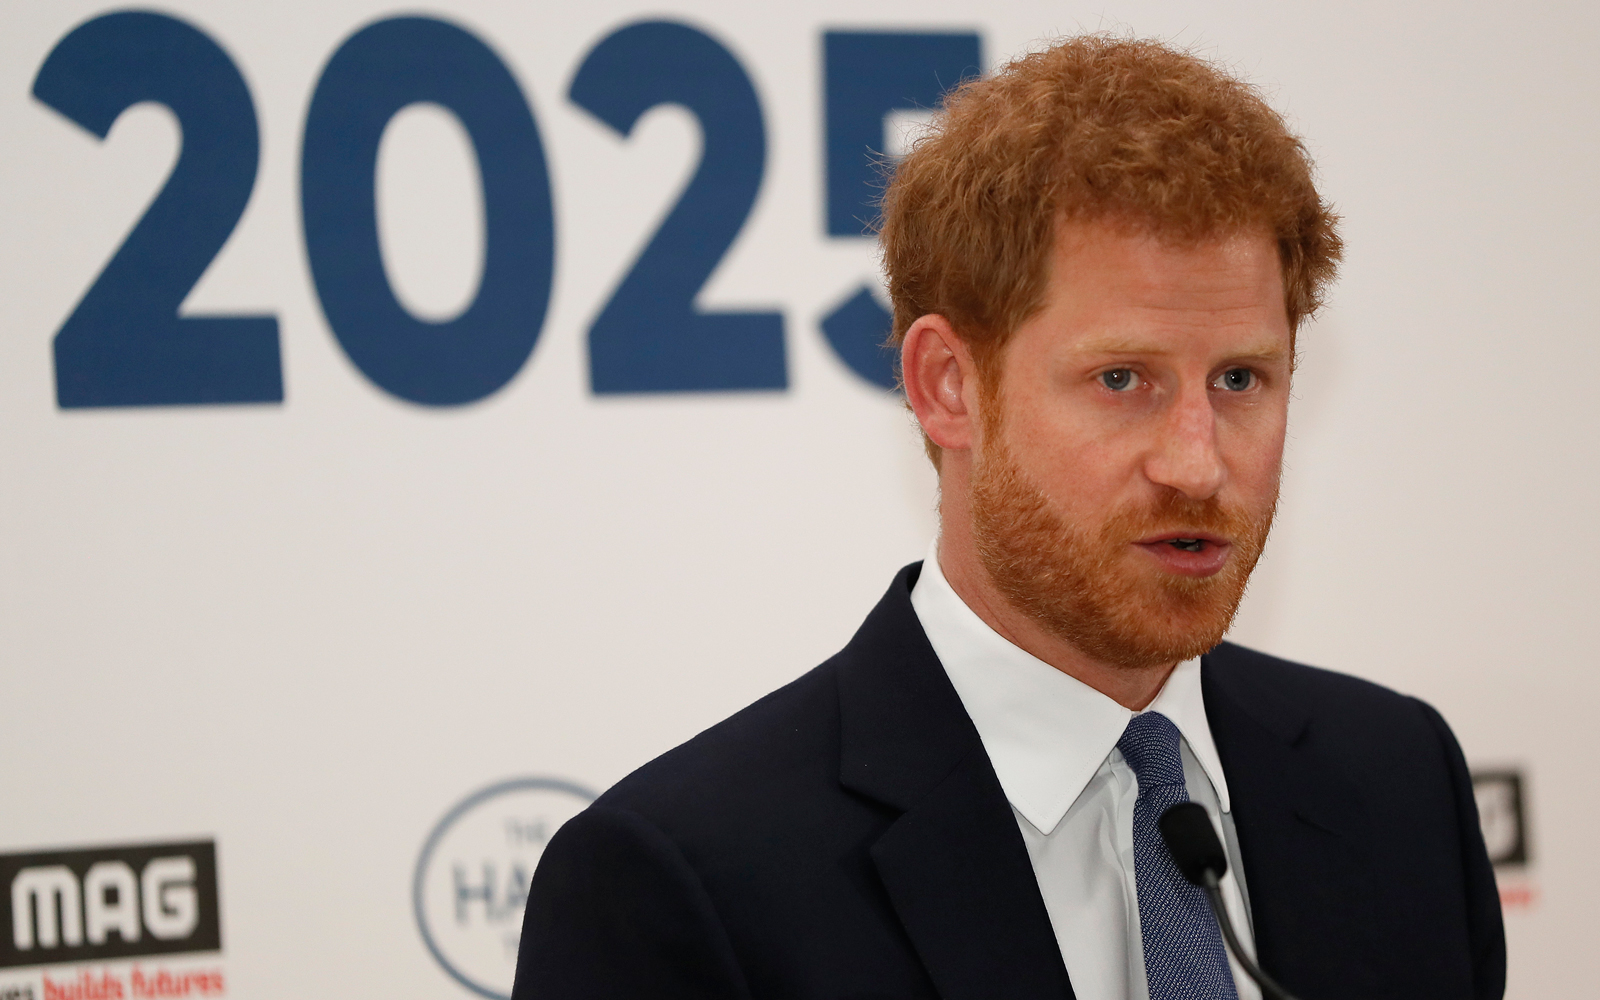 Prince Harry: Keep Diana's Legacy Alive by Ridding the World of Landmines